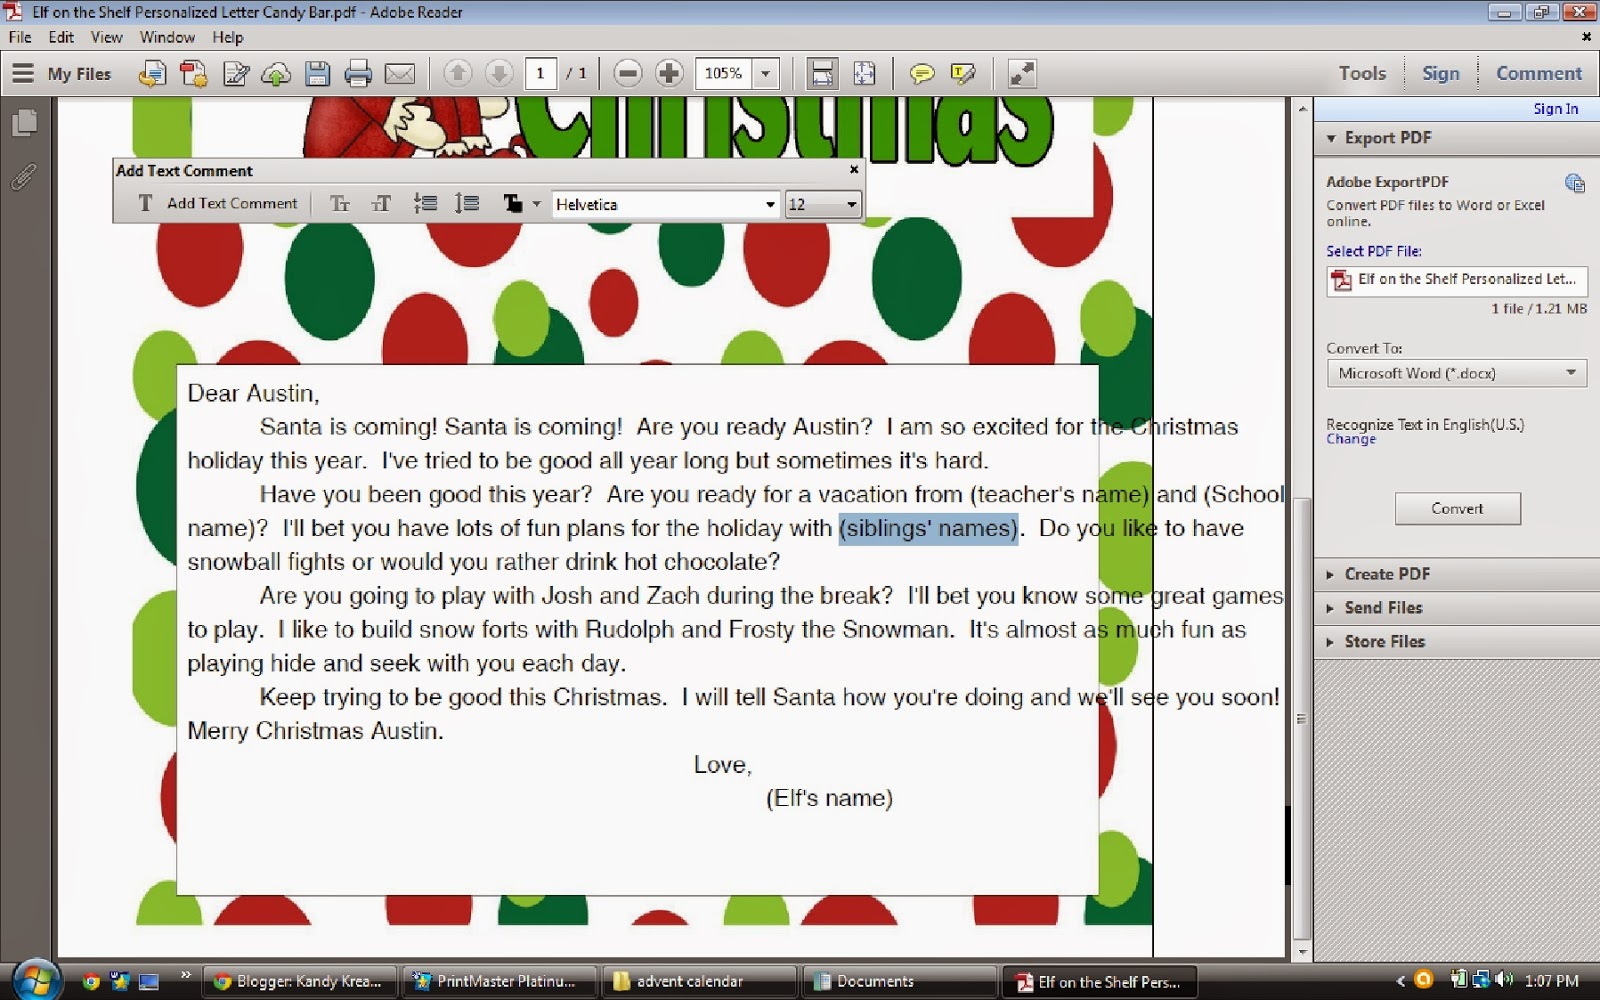 Make an Elf on the Shelf personalized letter